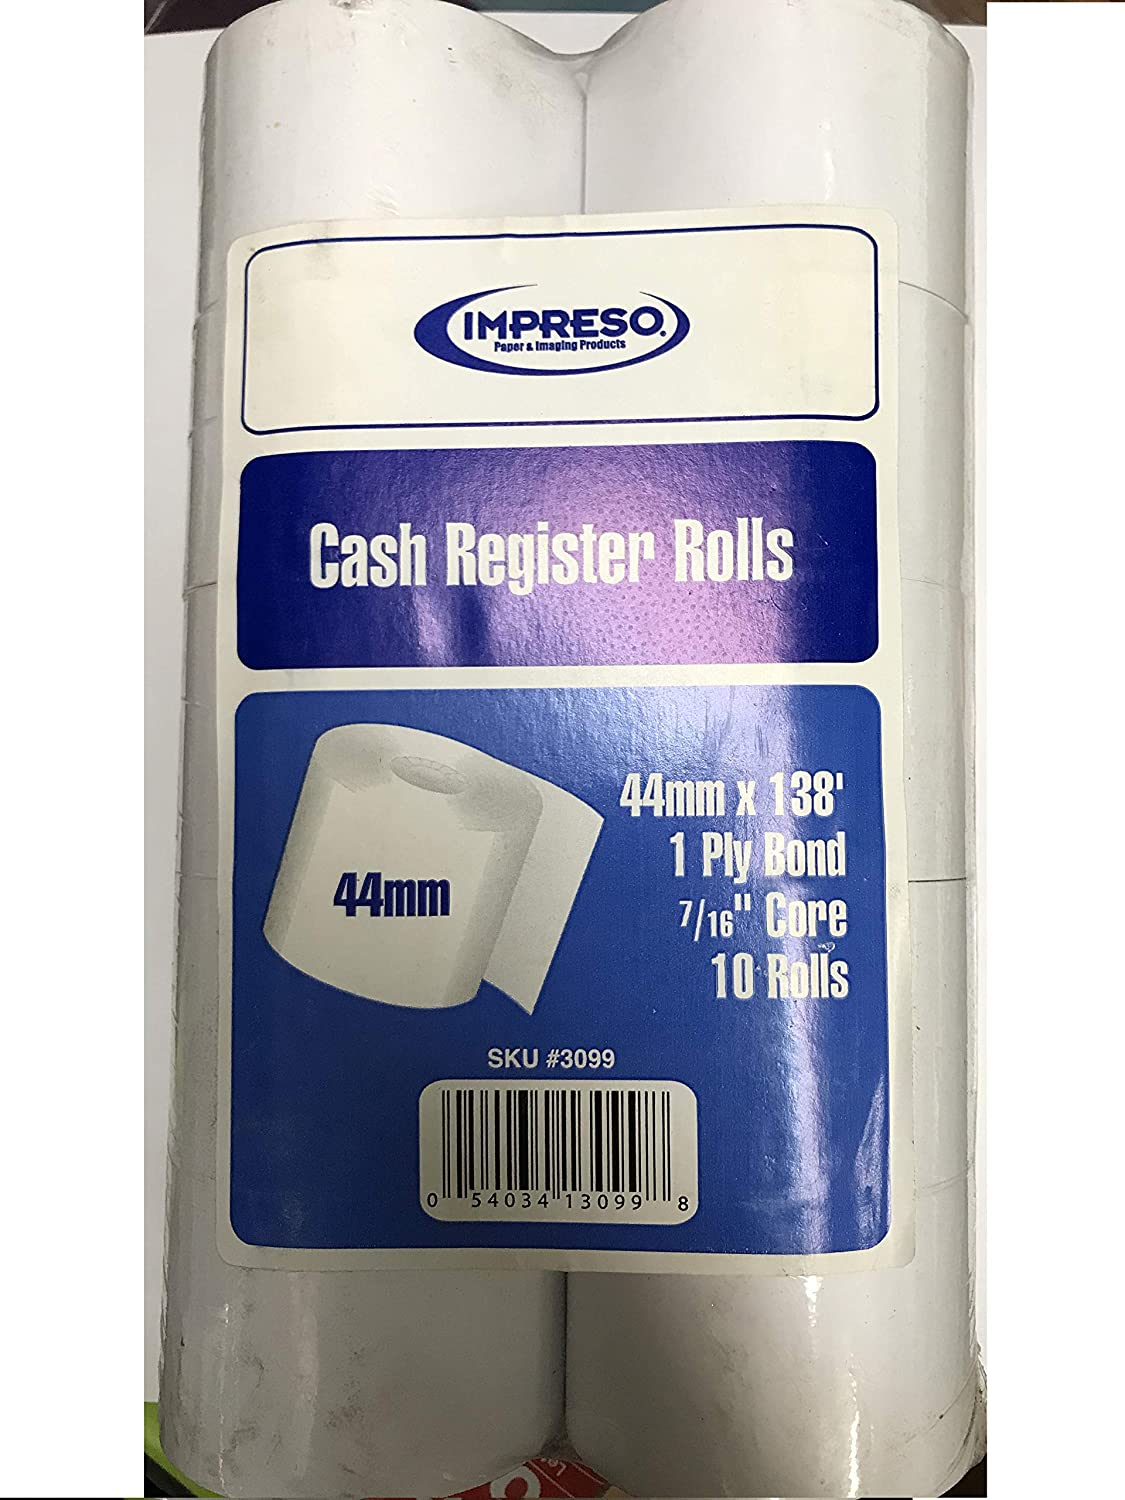 L 1 Ply 7//16 Core Sold in Units of 10 Rolls x 44 mm W Impreso Cash Register Rolls 138 Feet